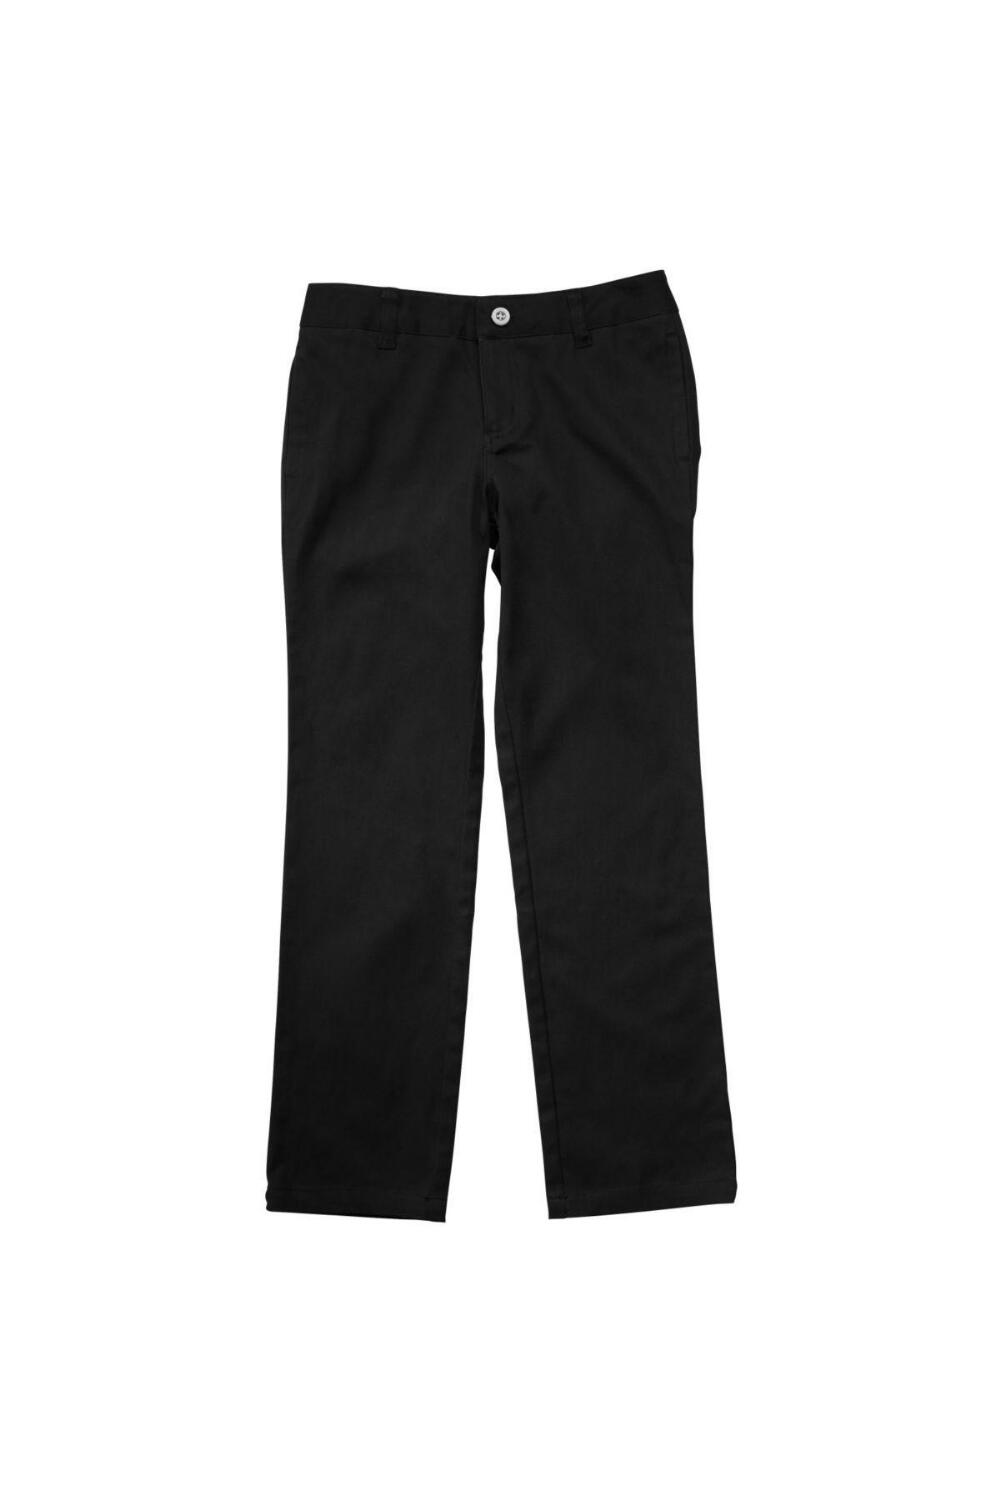 French Toast Girl's Straight Leg Twill Pant (Pant Color: Black, Pant Size: Size 4)